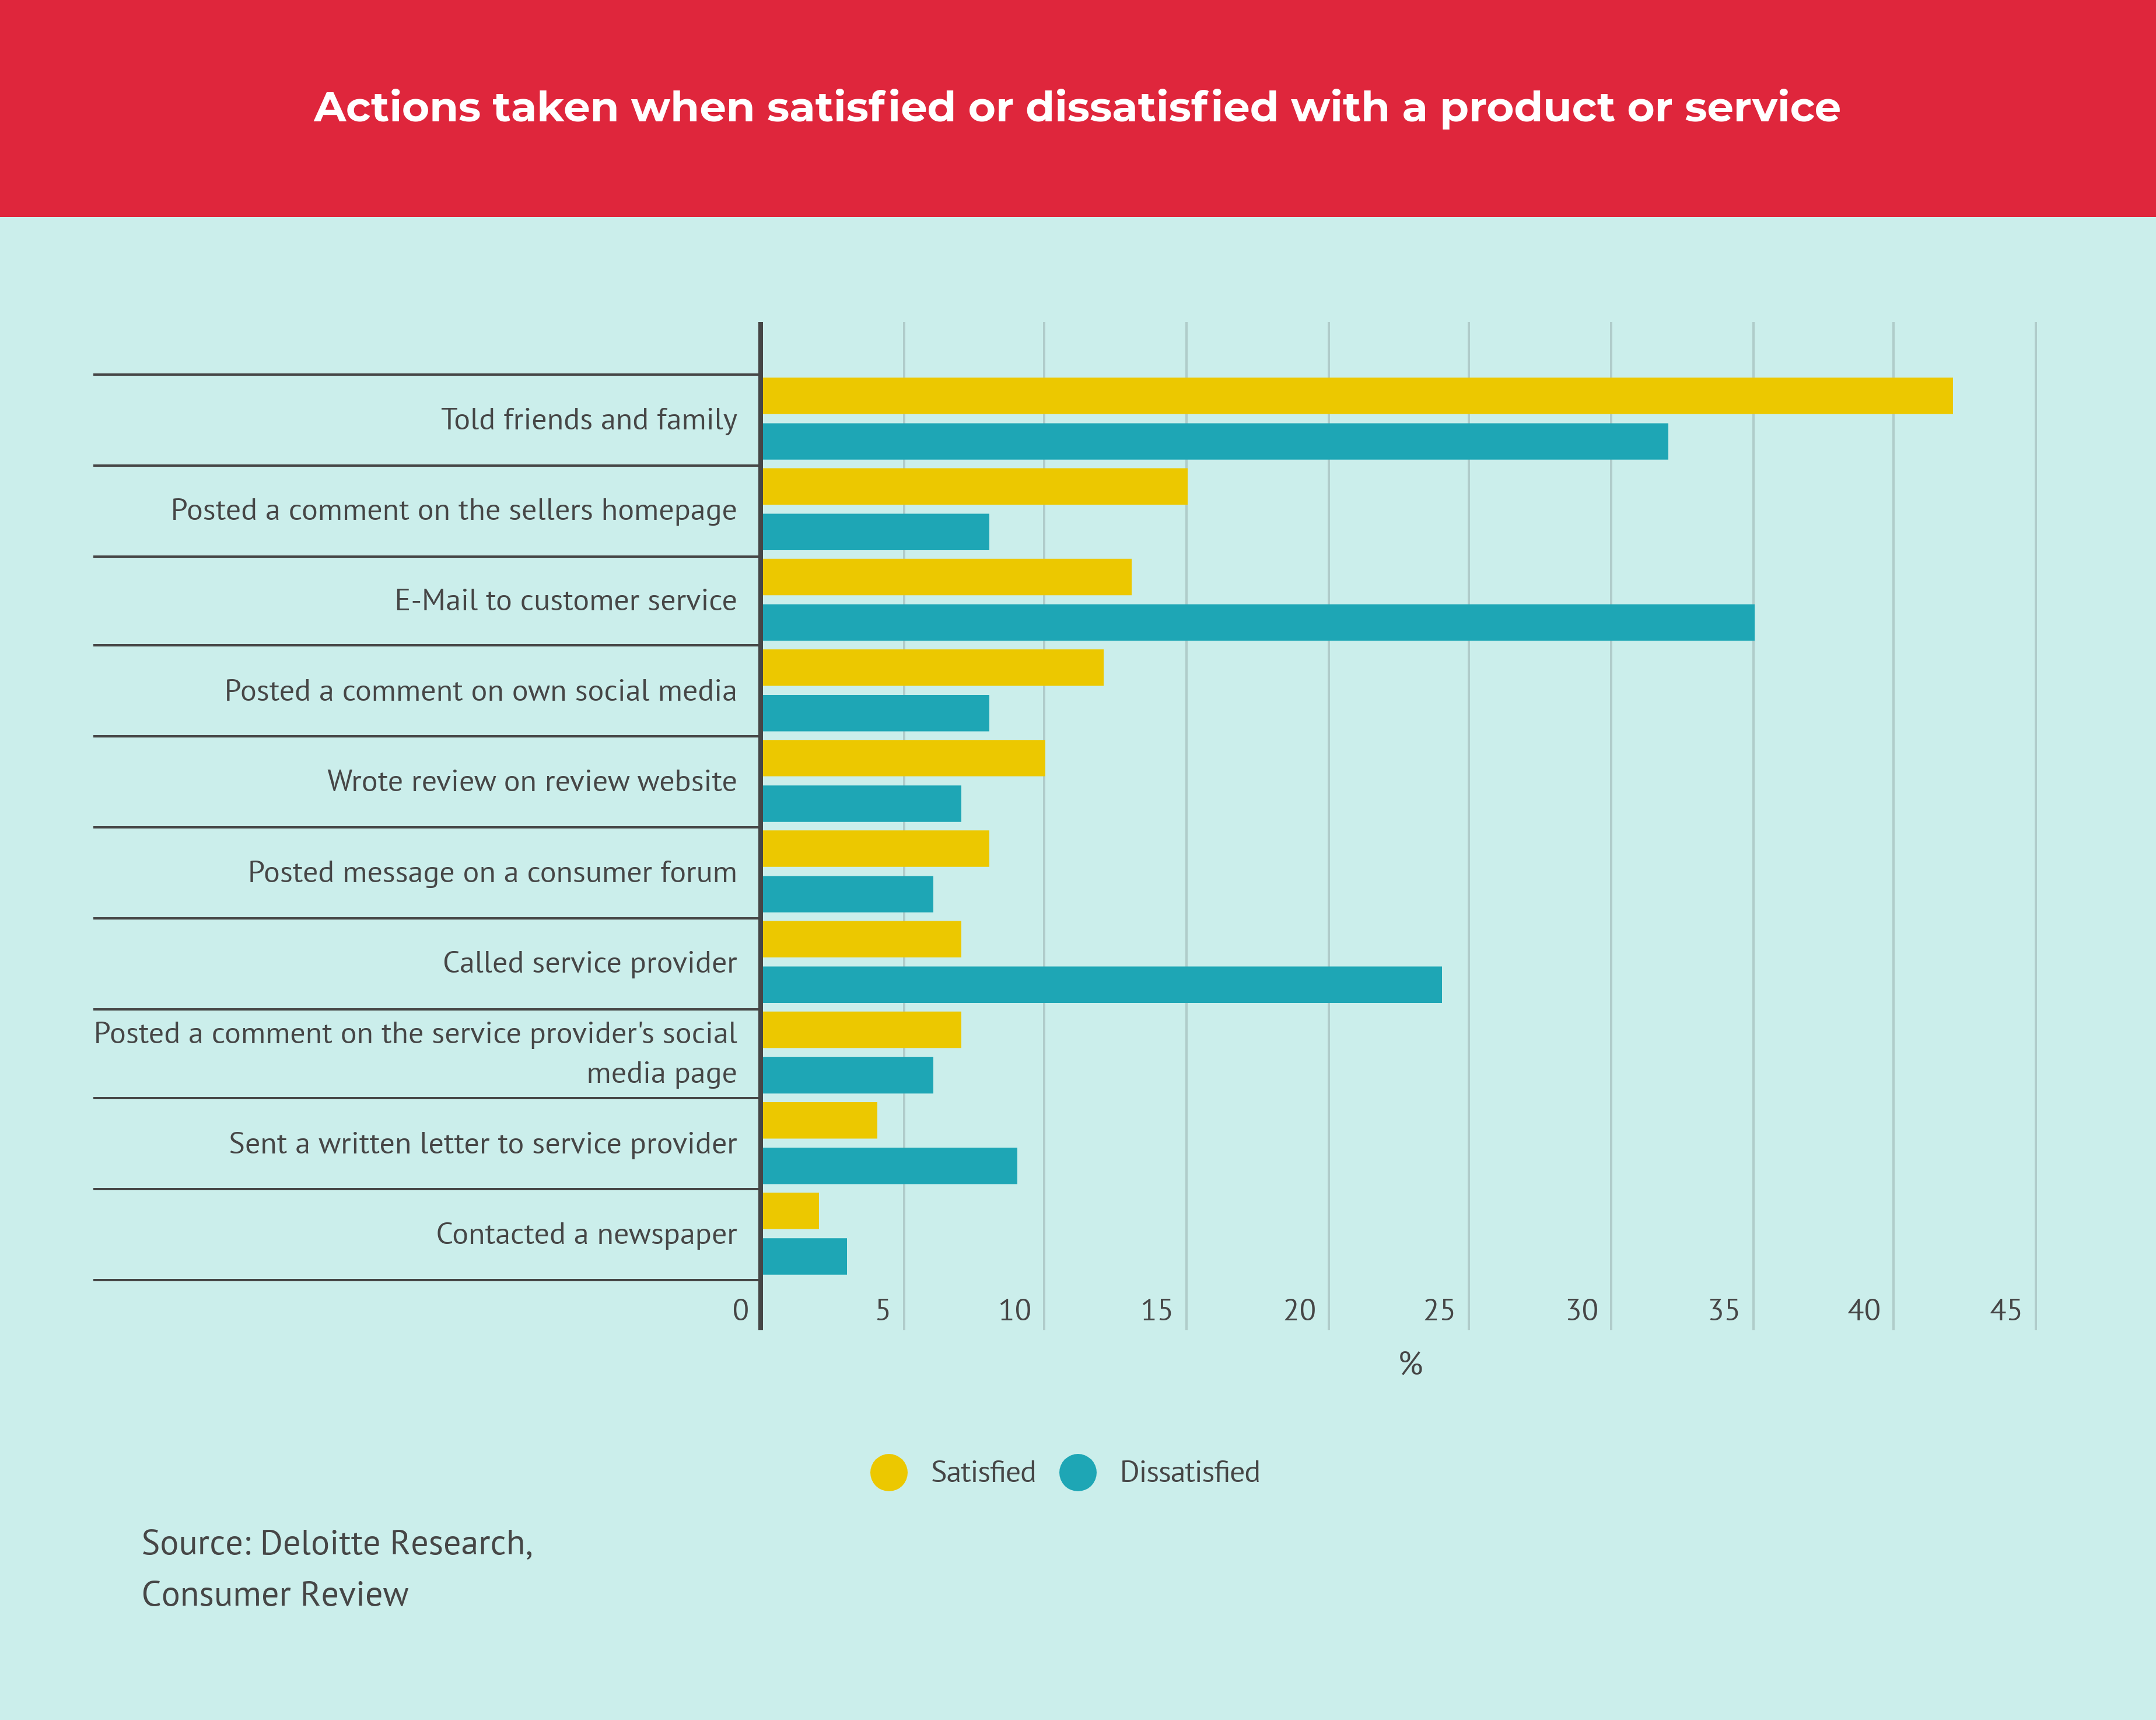 Actions taken by customers